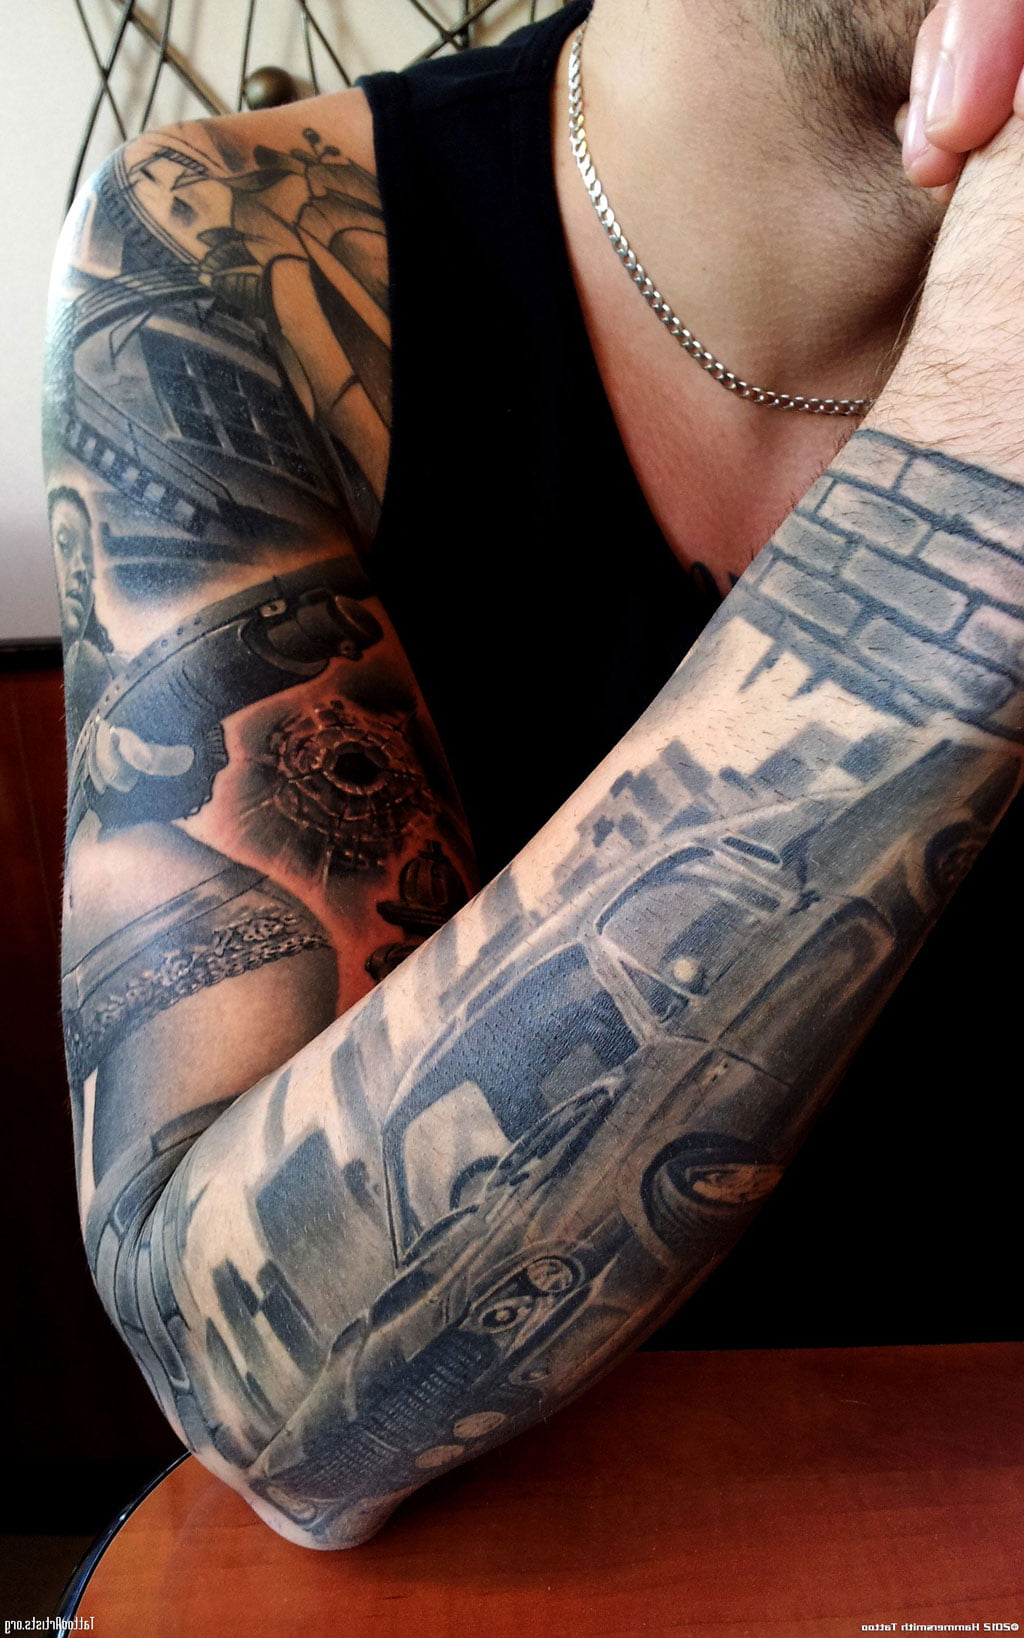 Custom tattoo sleeves cool tattoos bonbaden for Full custom tattoo